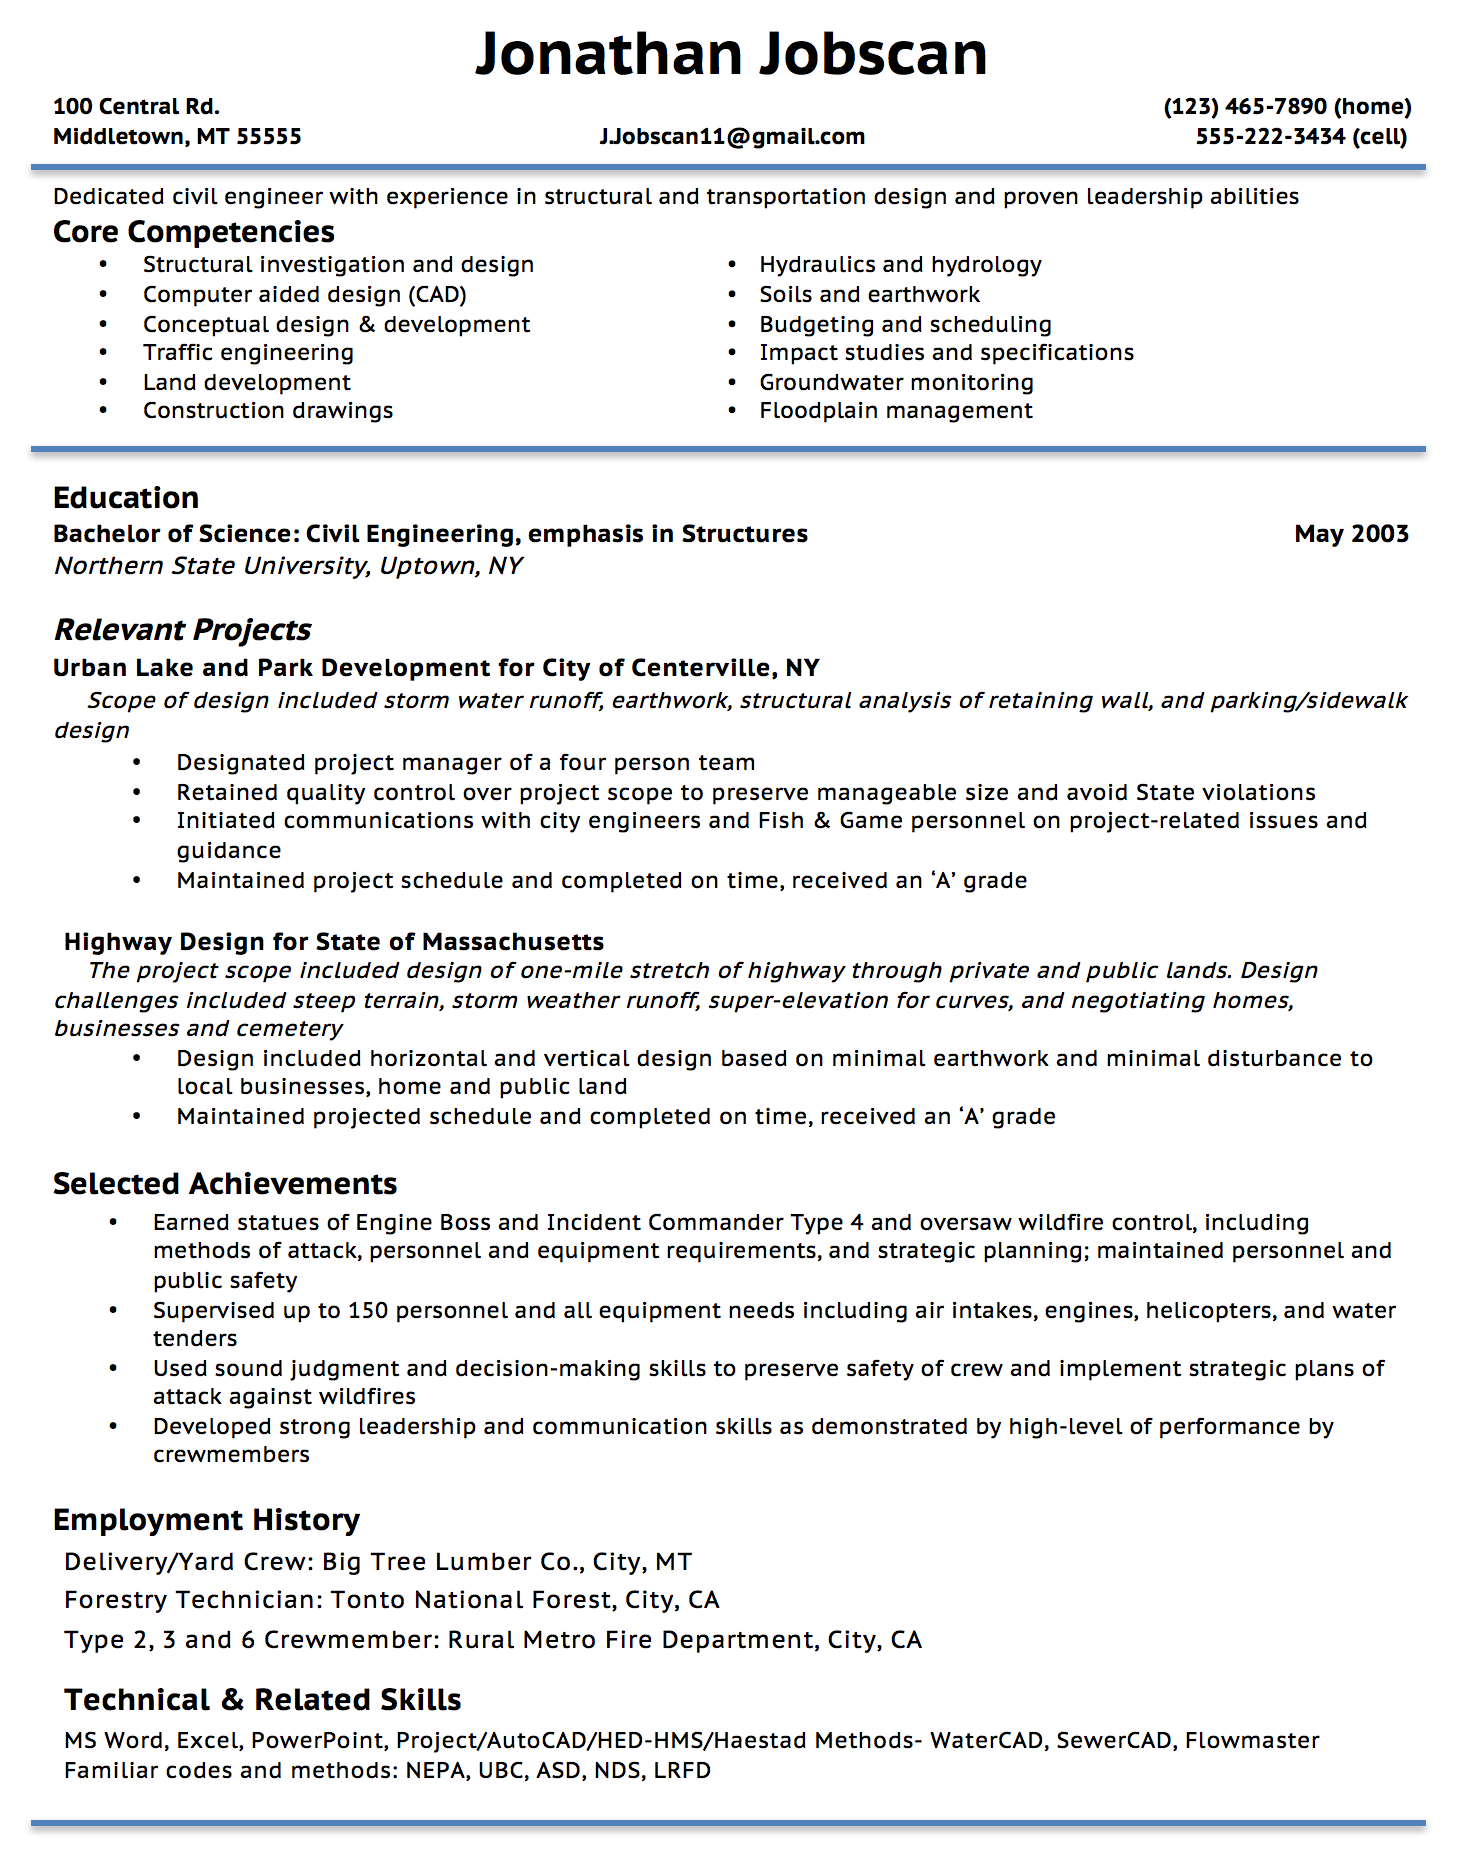 Opposenewapstandardsus  Prepossessing Resume Writing Guide  Jobscan With Inspiring Example Of A Functional Resume Format With Delightful Professionally Written Resume Also High School Resume Template Word In Addition Resume For Assistant Manager And Resume Sample For College Student As Well As Customer Service Representative Resume Objective Additionally Electrician Helper Resume From Jobscanco With Opposenewapstandardsus  Inspiring Resume Writing Guide  Jobscan With Delightful Example Of A Functional Resume Format And Prepossessing Professionally Written Resume Also High School Resume Template Word In Addition Resume For Assistant Manager From Jobscanco